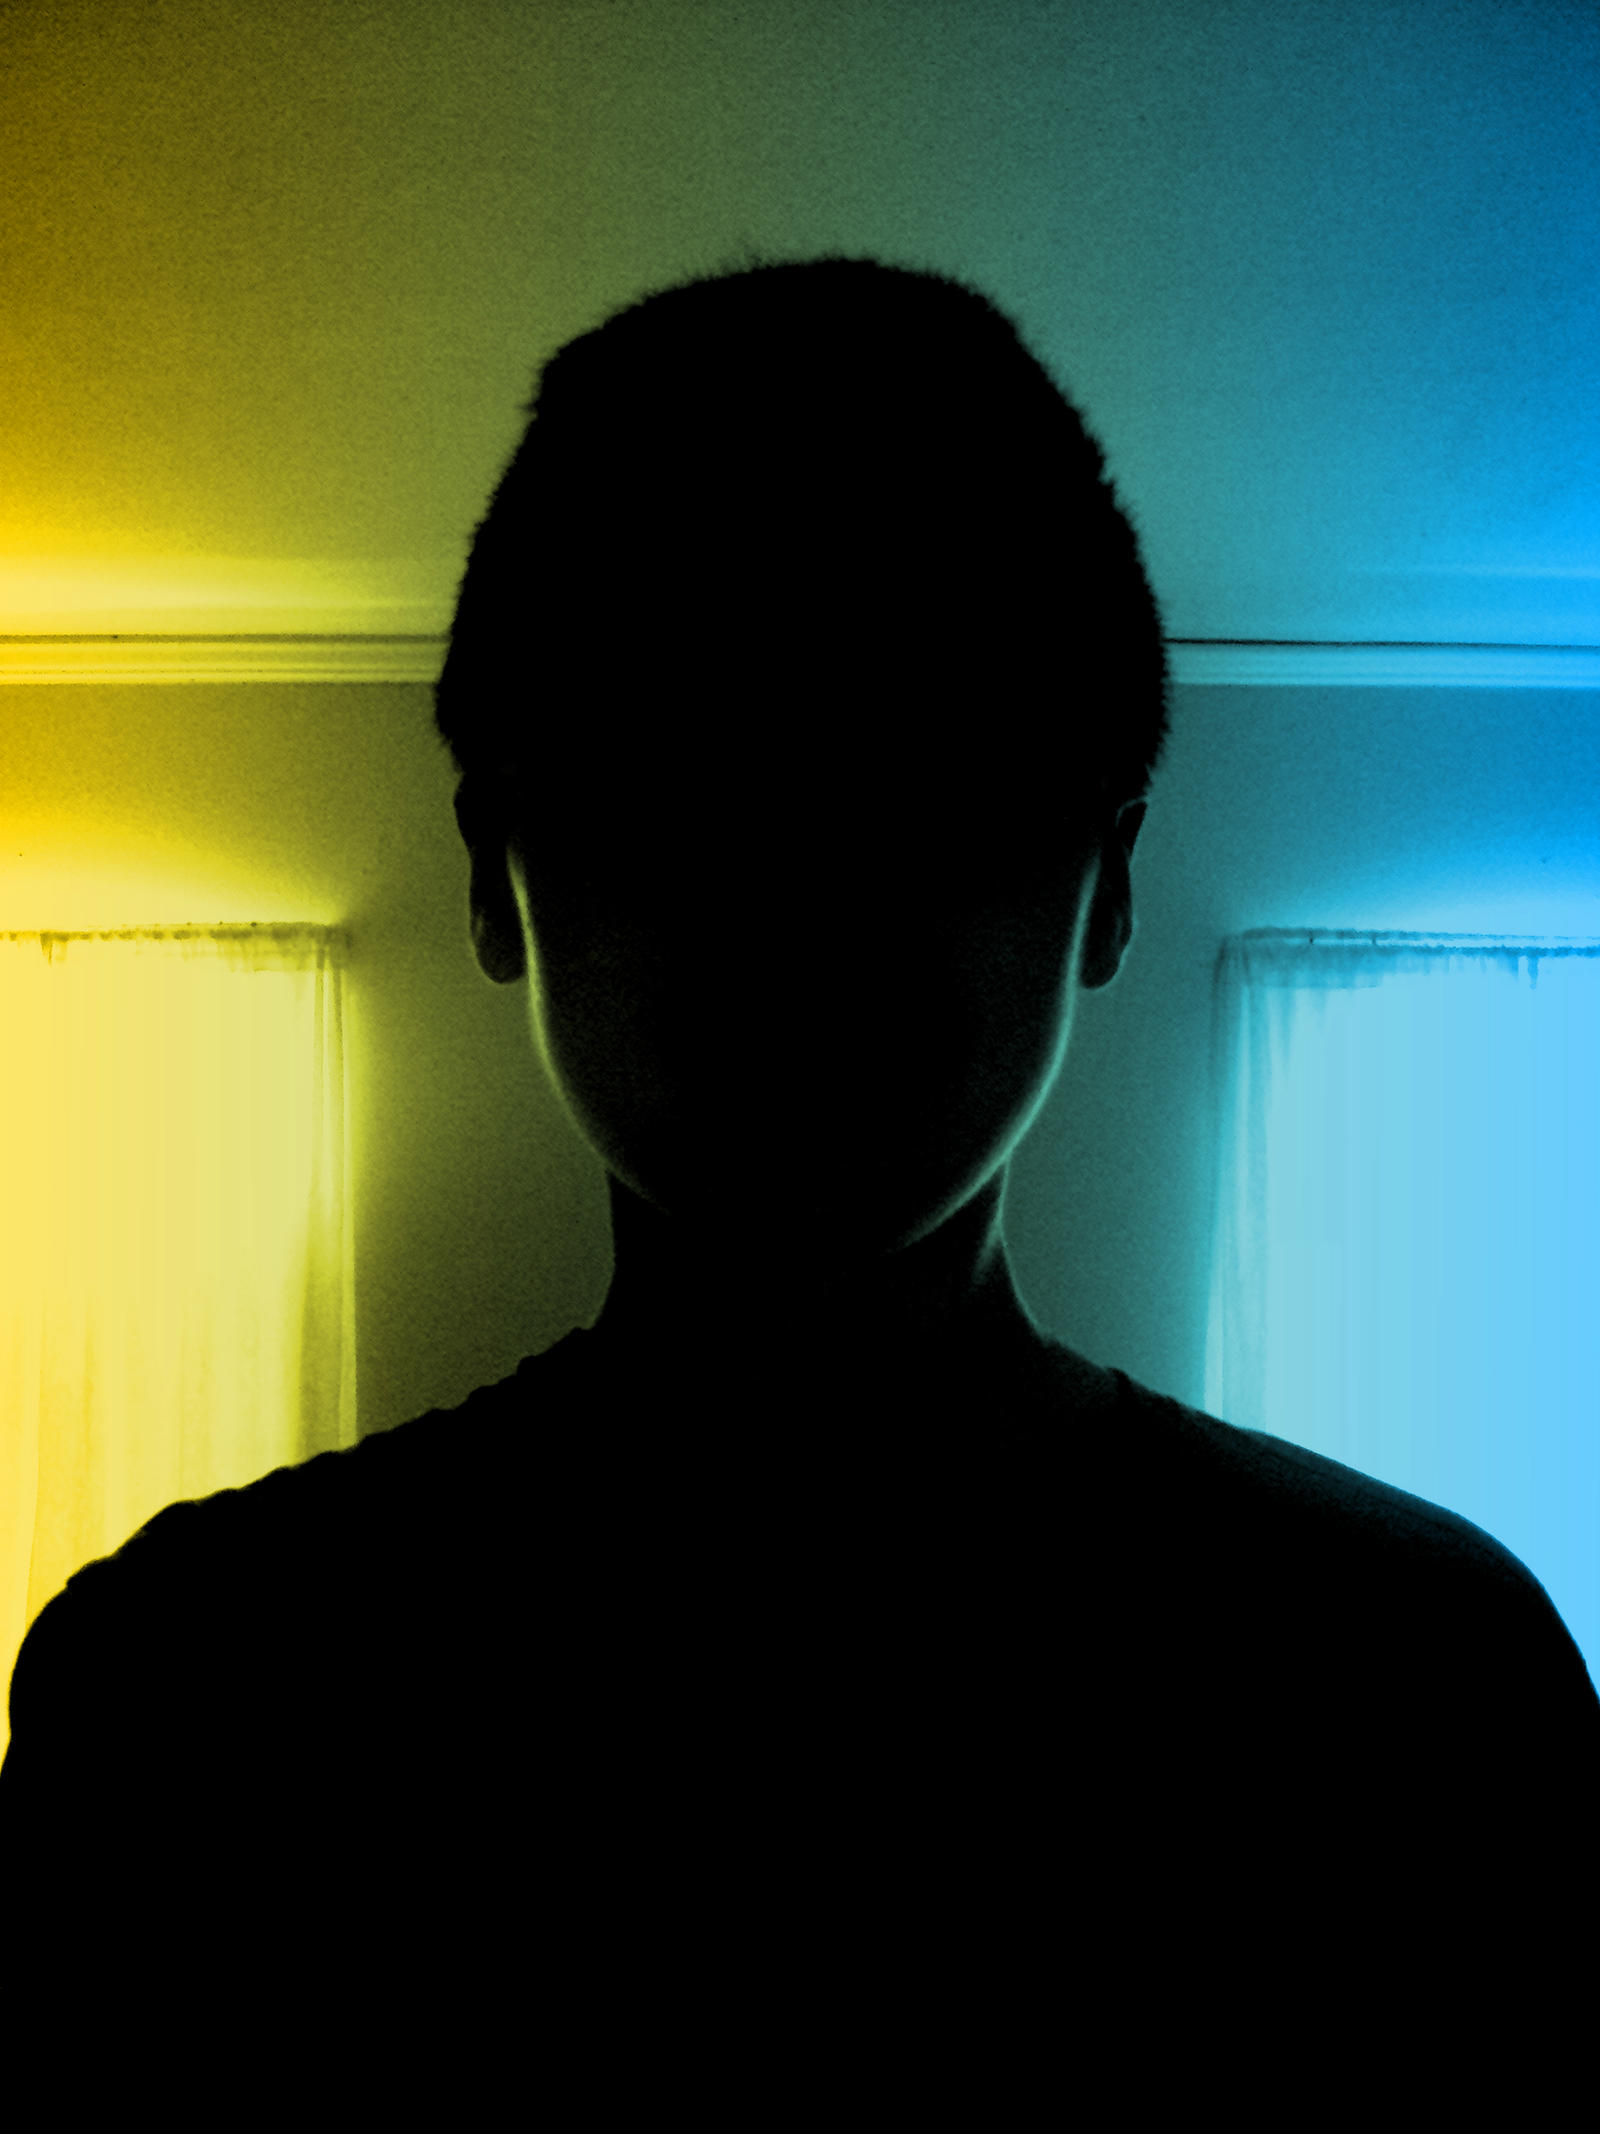 IridescentCatalyst's Profile Picture